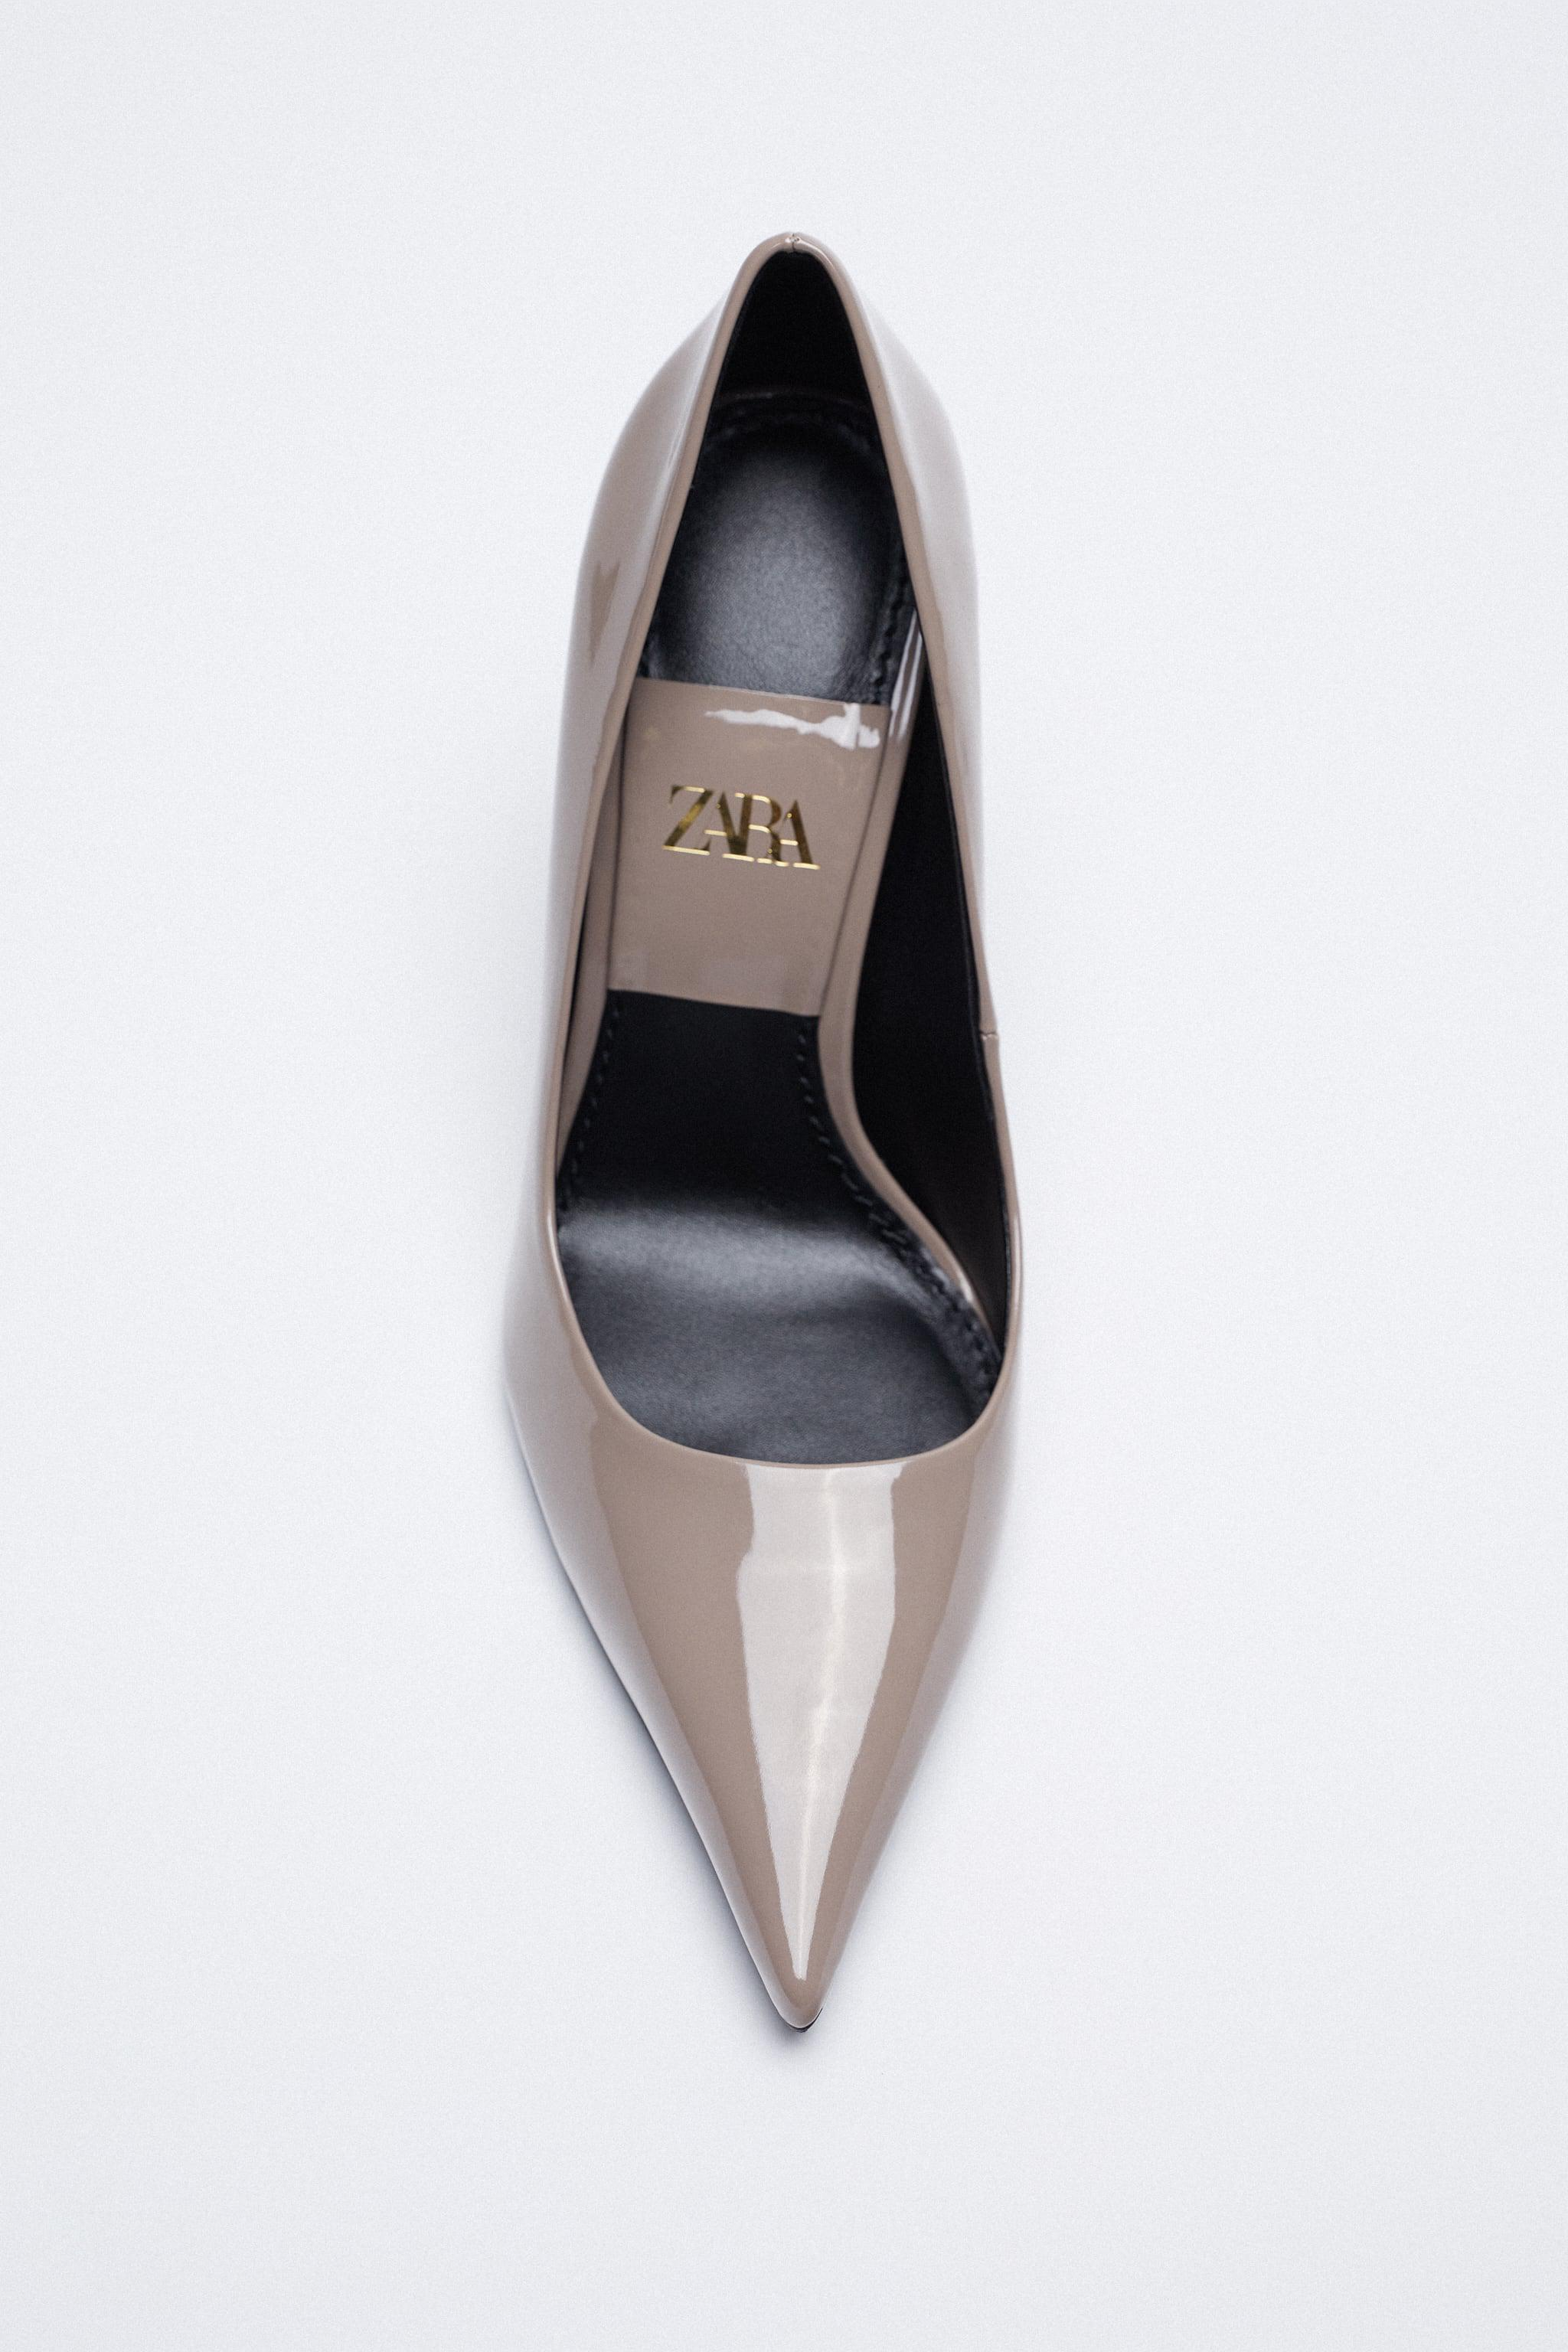 PATENT FINISH POINTED TOE HEELS 5